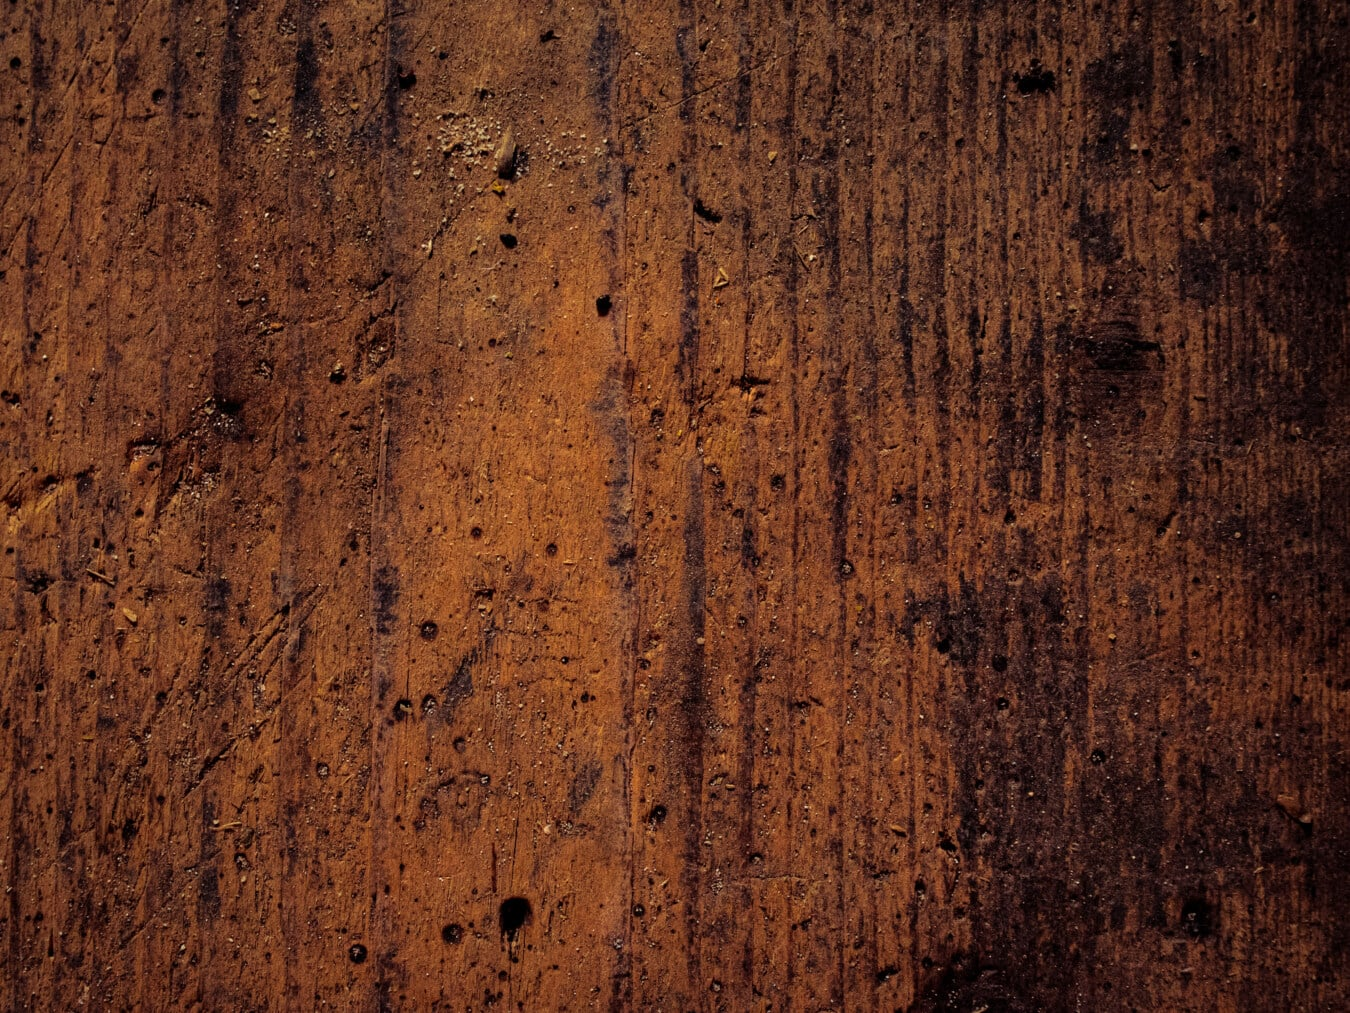 texture, wooden, decay, vintage, plank, stain, carpentry, hardwood, old, ancient